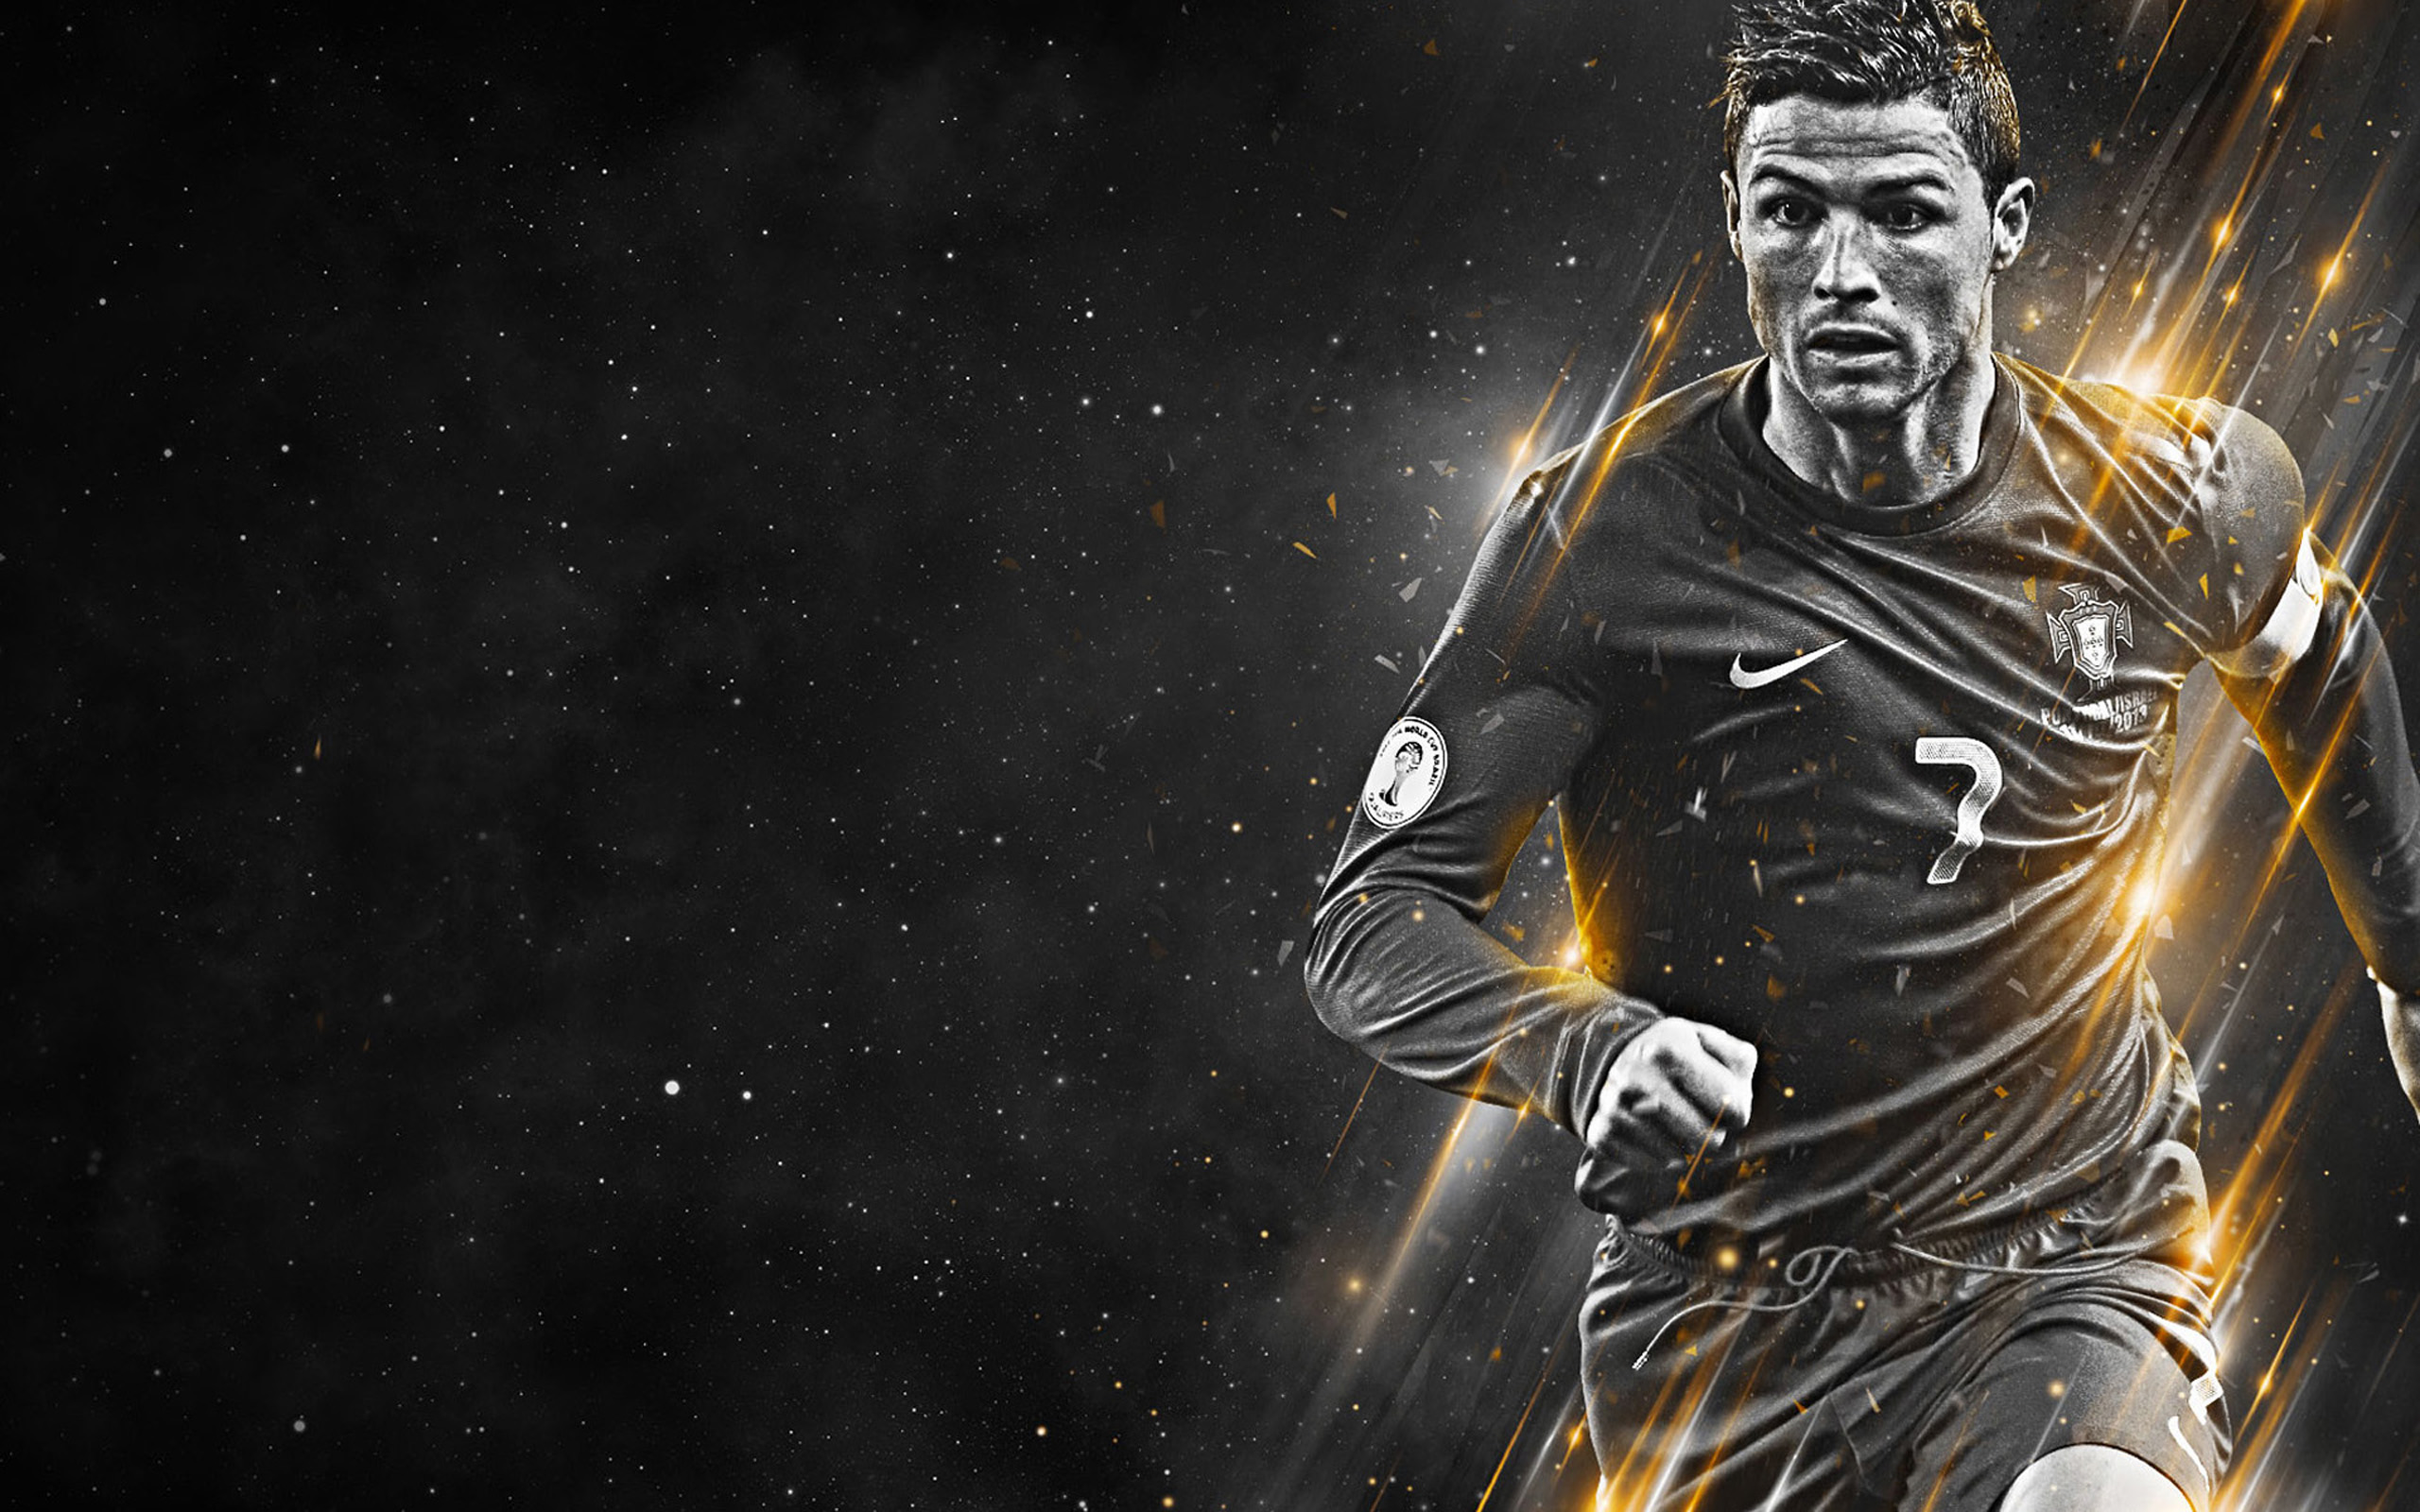 Cristiano ronaldo wallpapers pictures images - C ronaldo wallpaper portugal ...